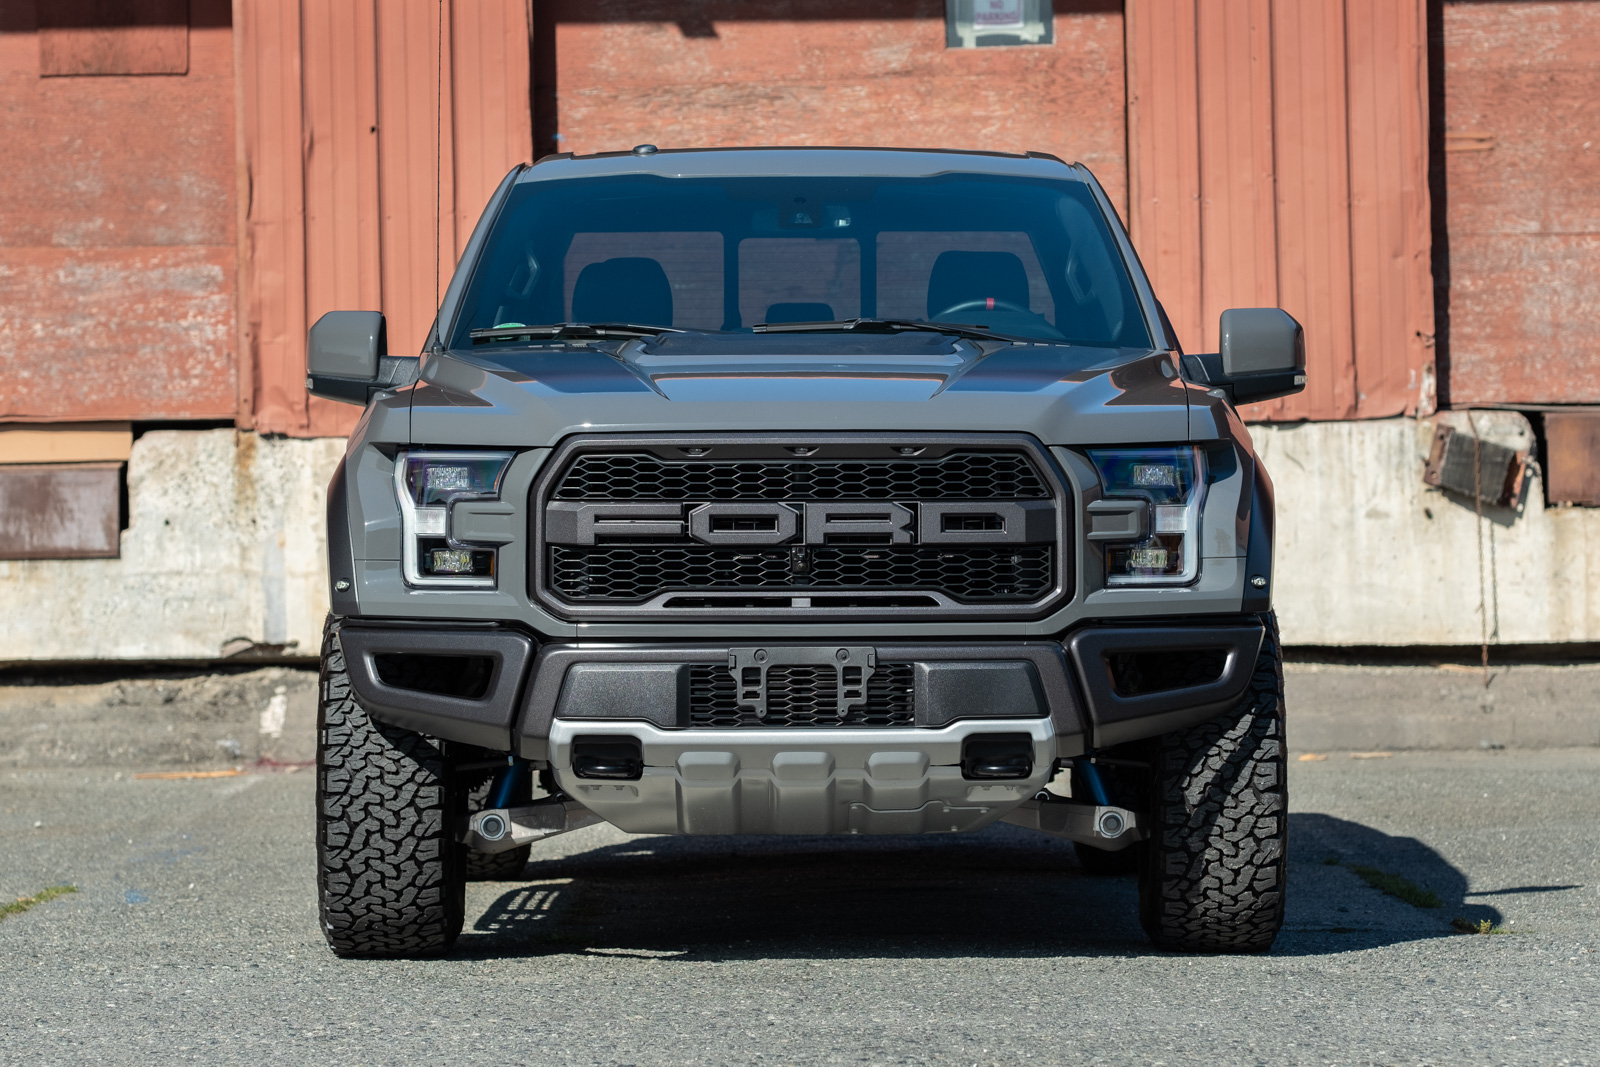 2018 Ford F150 Interior >> 2018 Ford F150 Raptor SVT - Silver Arrow Cars Ltd.